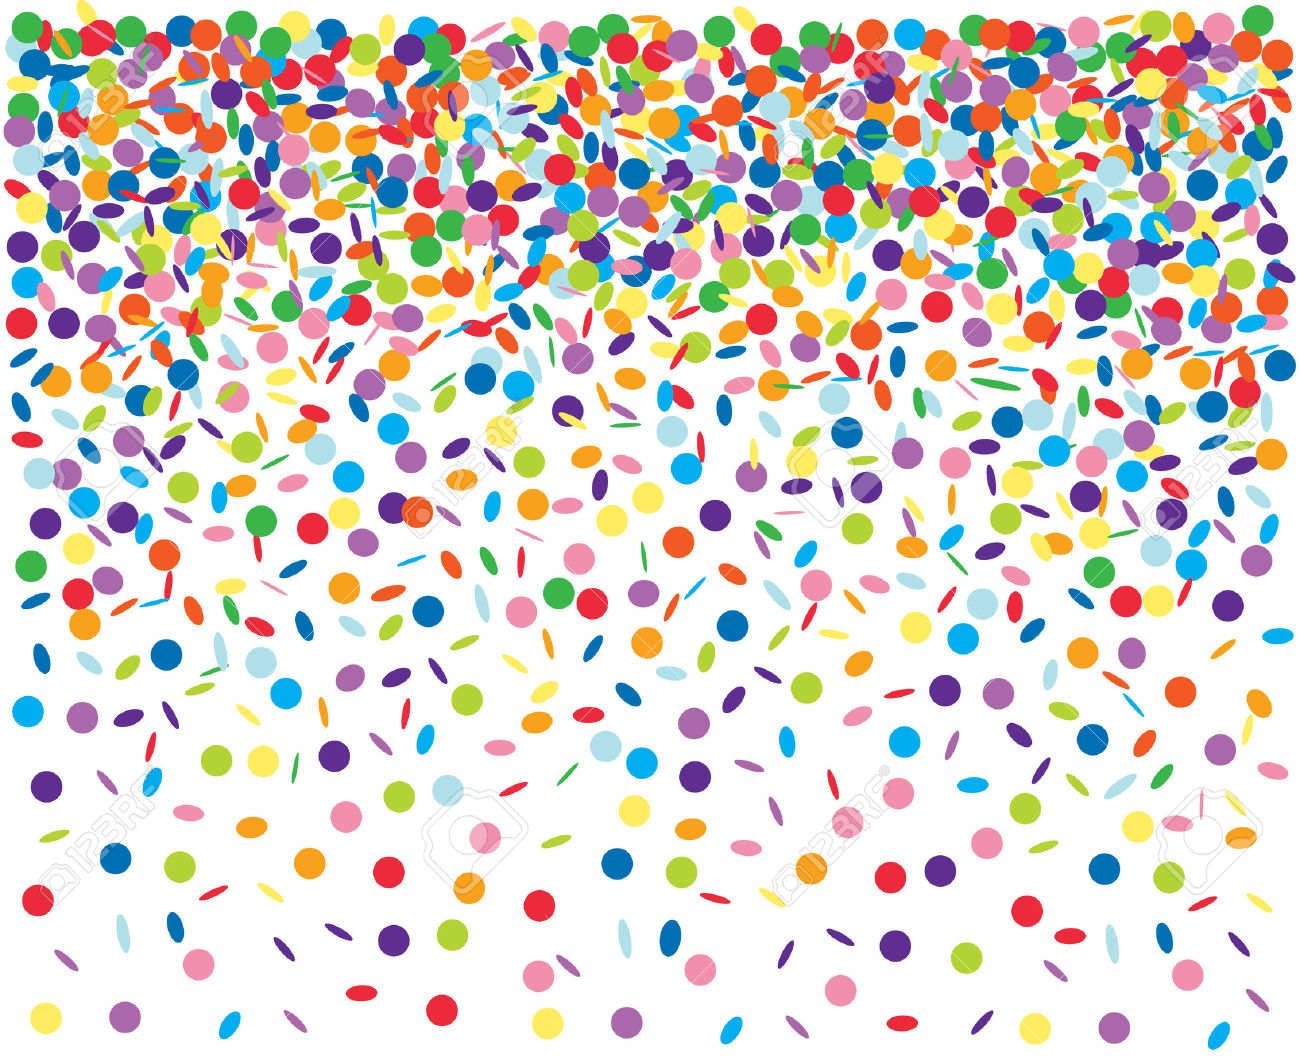 Background background clipart png freeuse library Free Confetti Cliparts Background, Download Free Clip Art, Free Clip ... png freeuse library